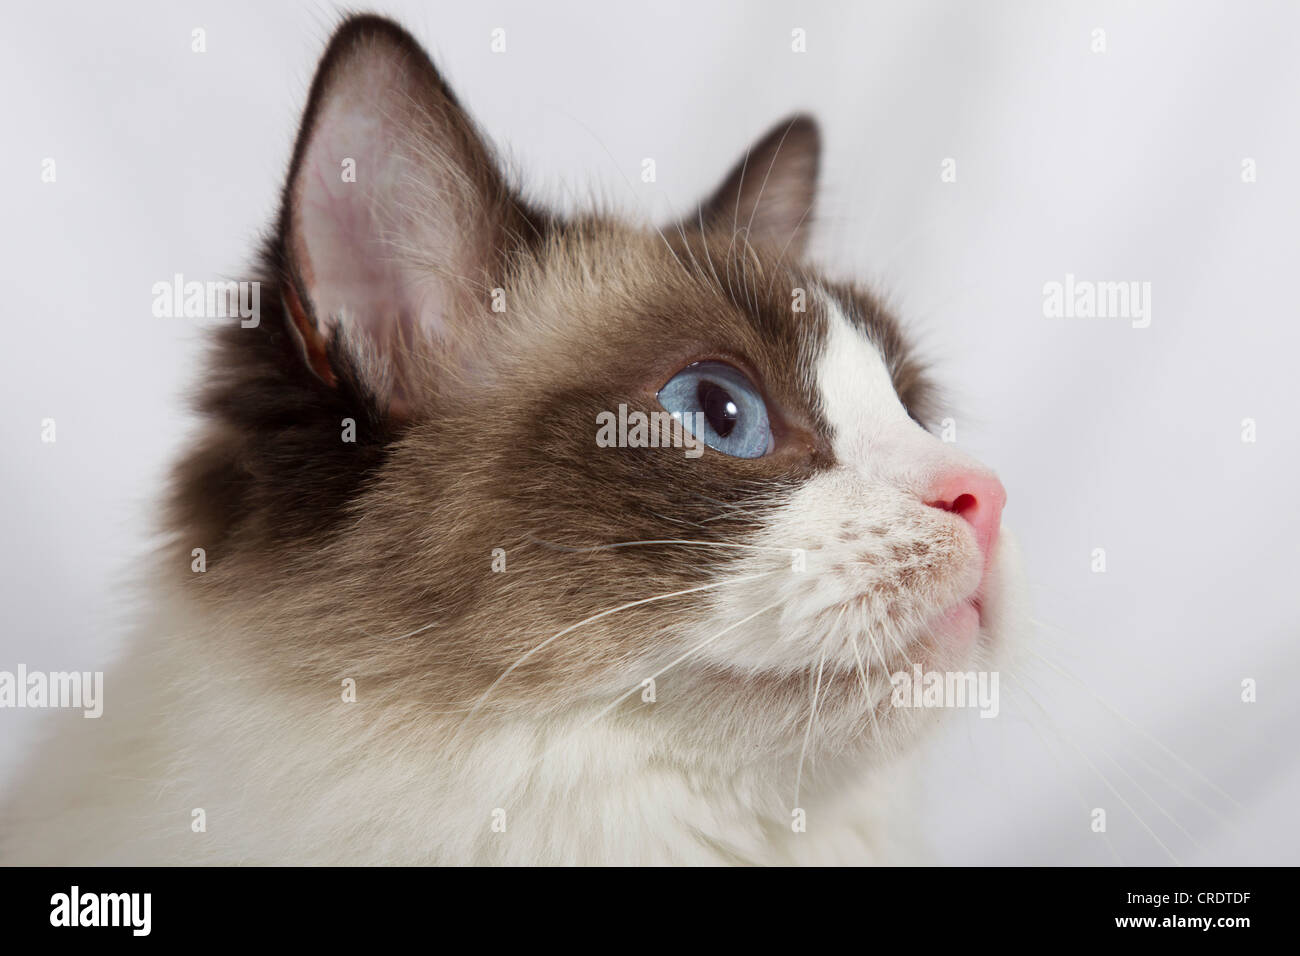 Ragdoll Cat Breed Stock Photo 48862395 Alamy